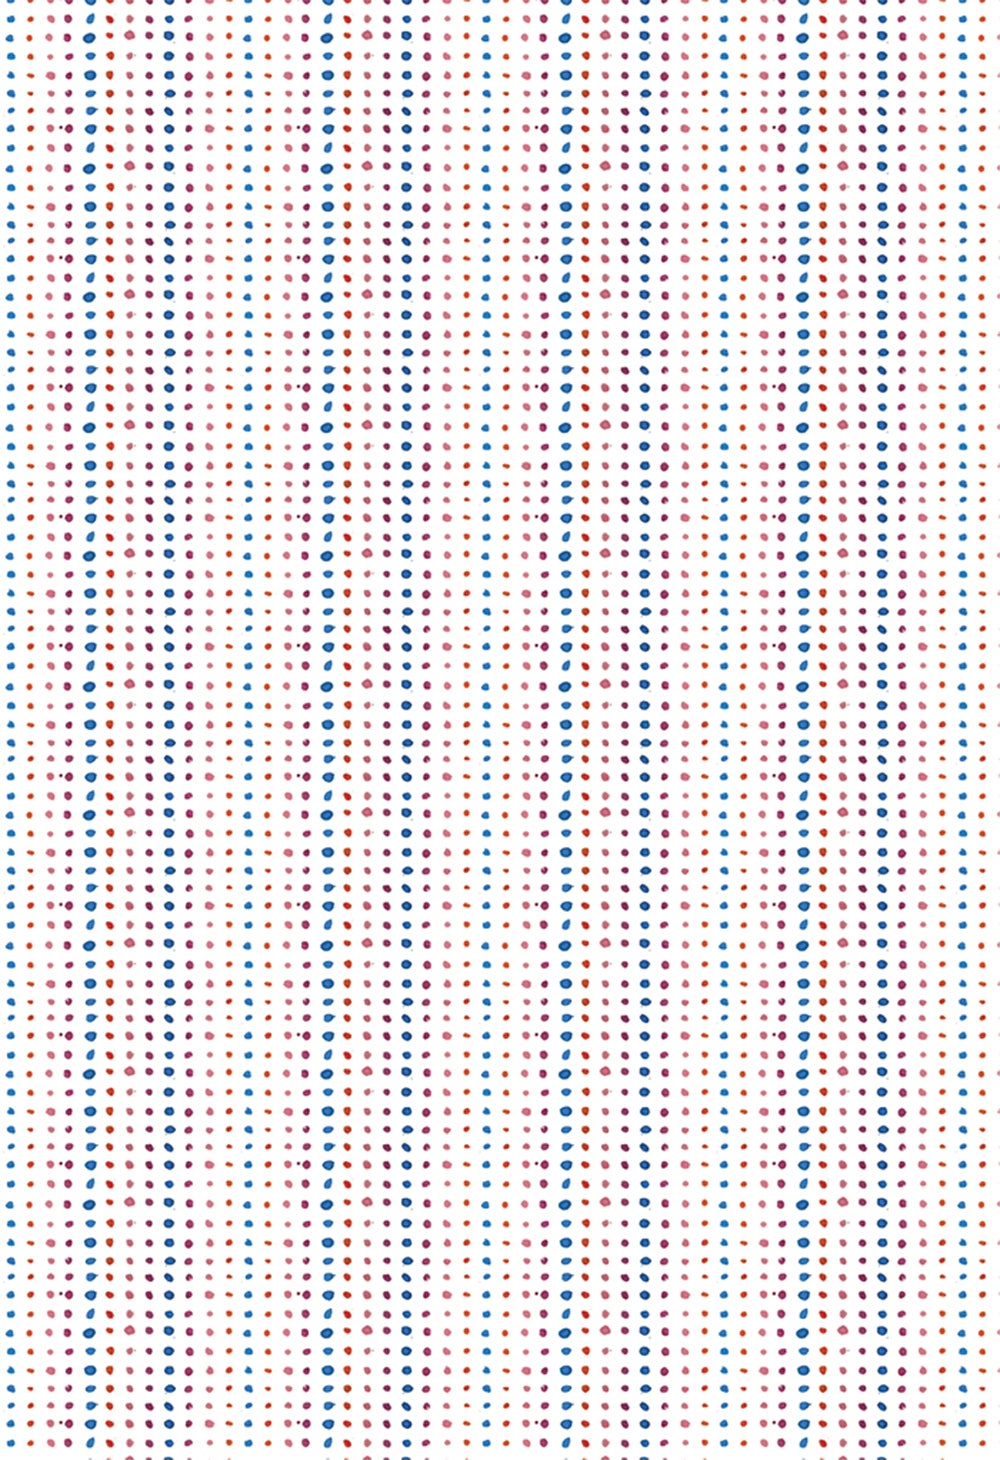 Image of Spots in colour